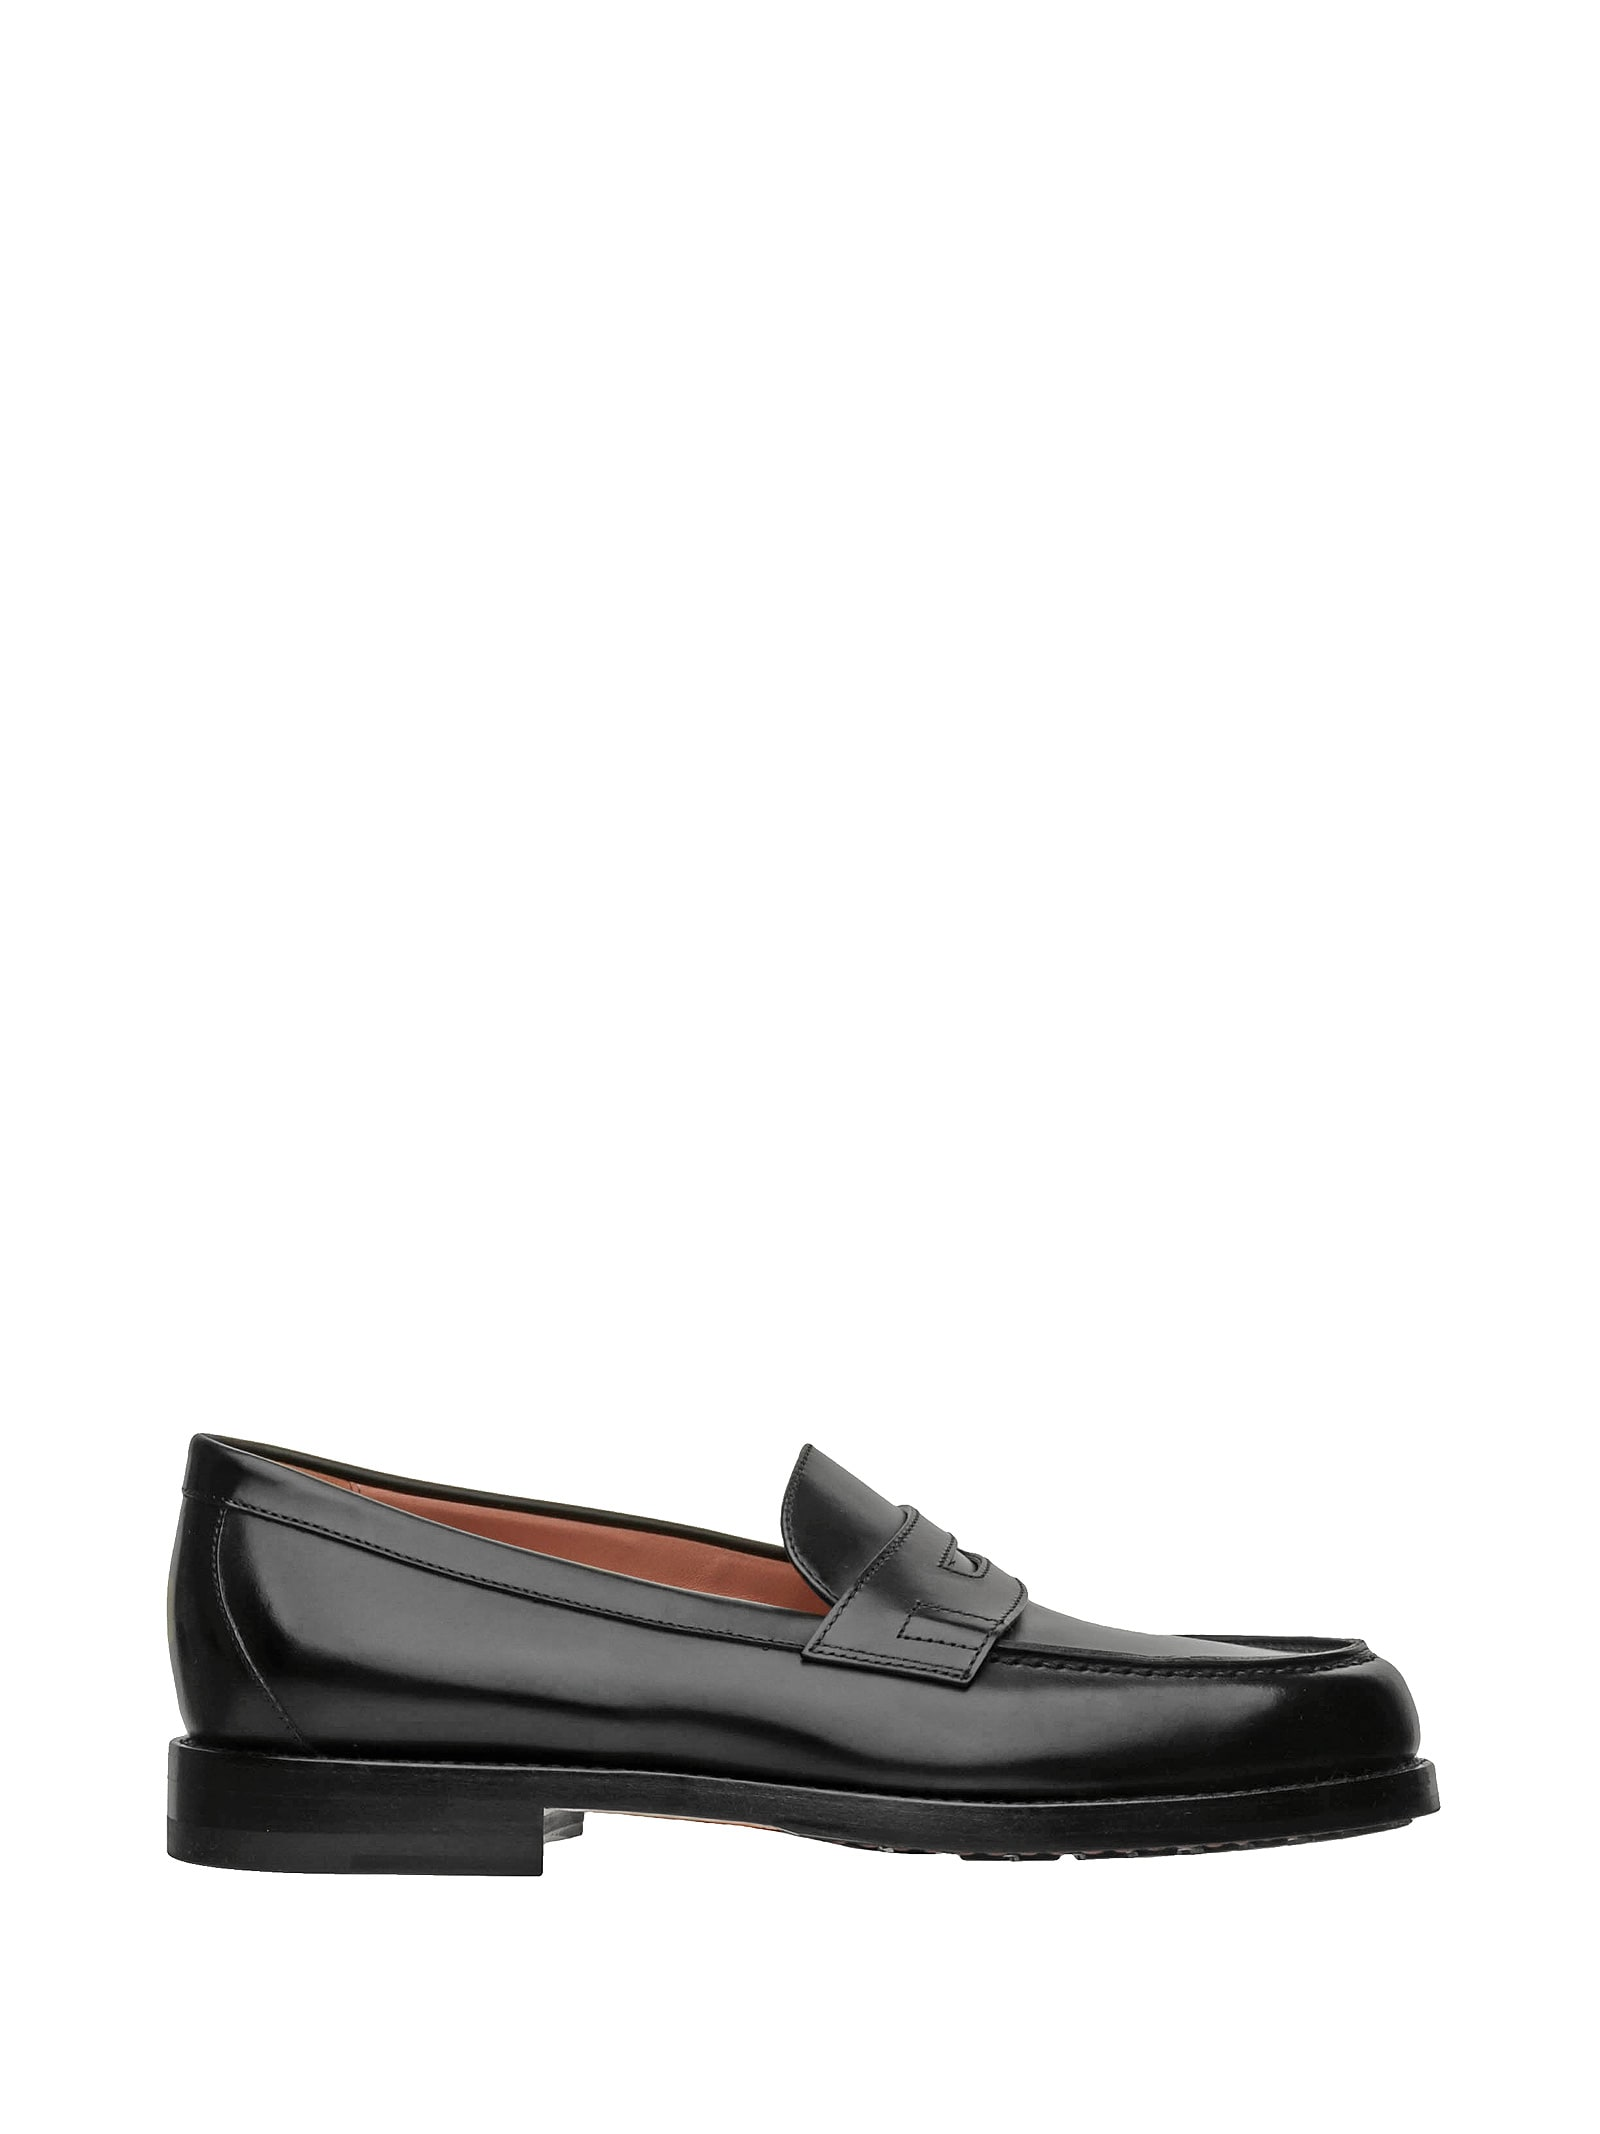 Santoni 1^ LINEA LEATHER LOAFER